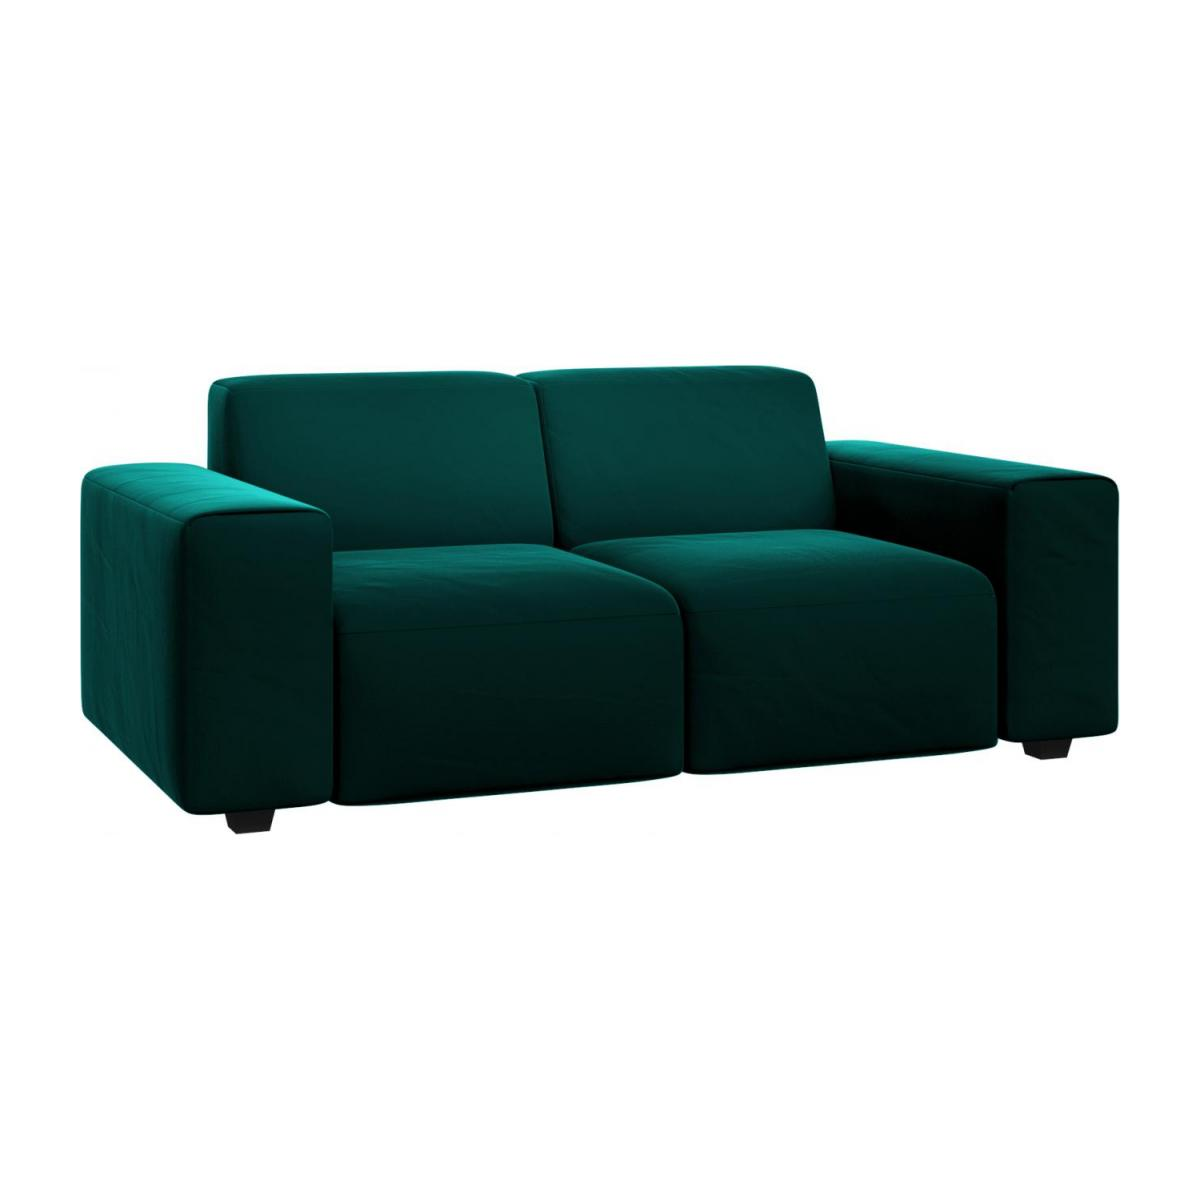 Posada 2 Seater Sofa In Super Velvet Fabric Petrol Blue Habitat